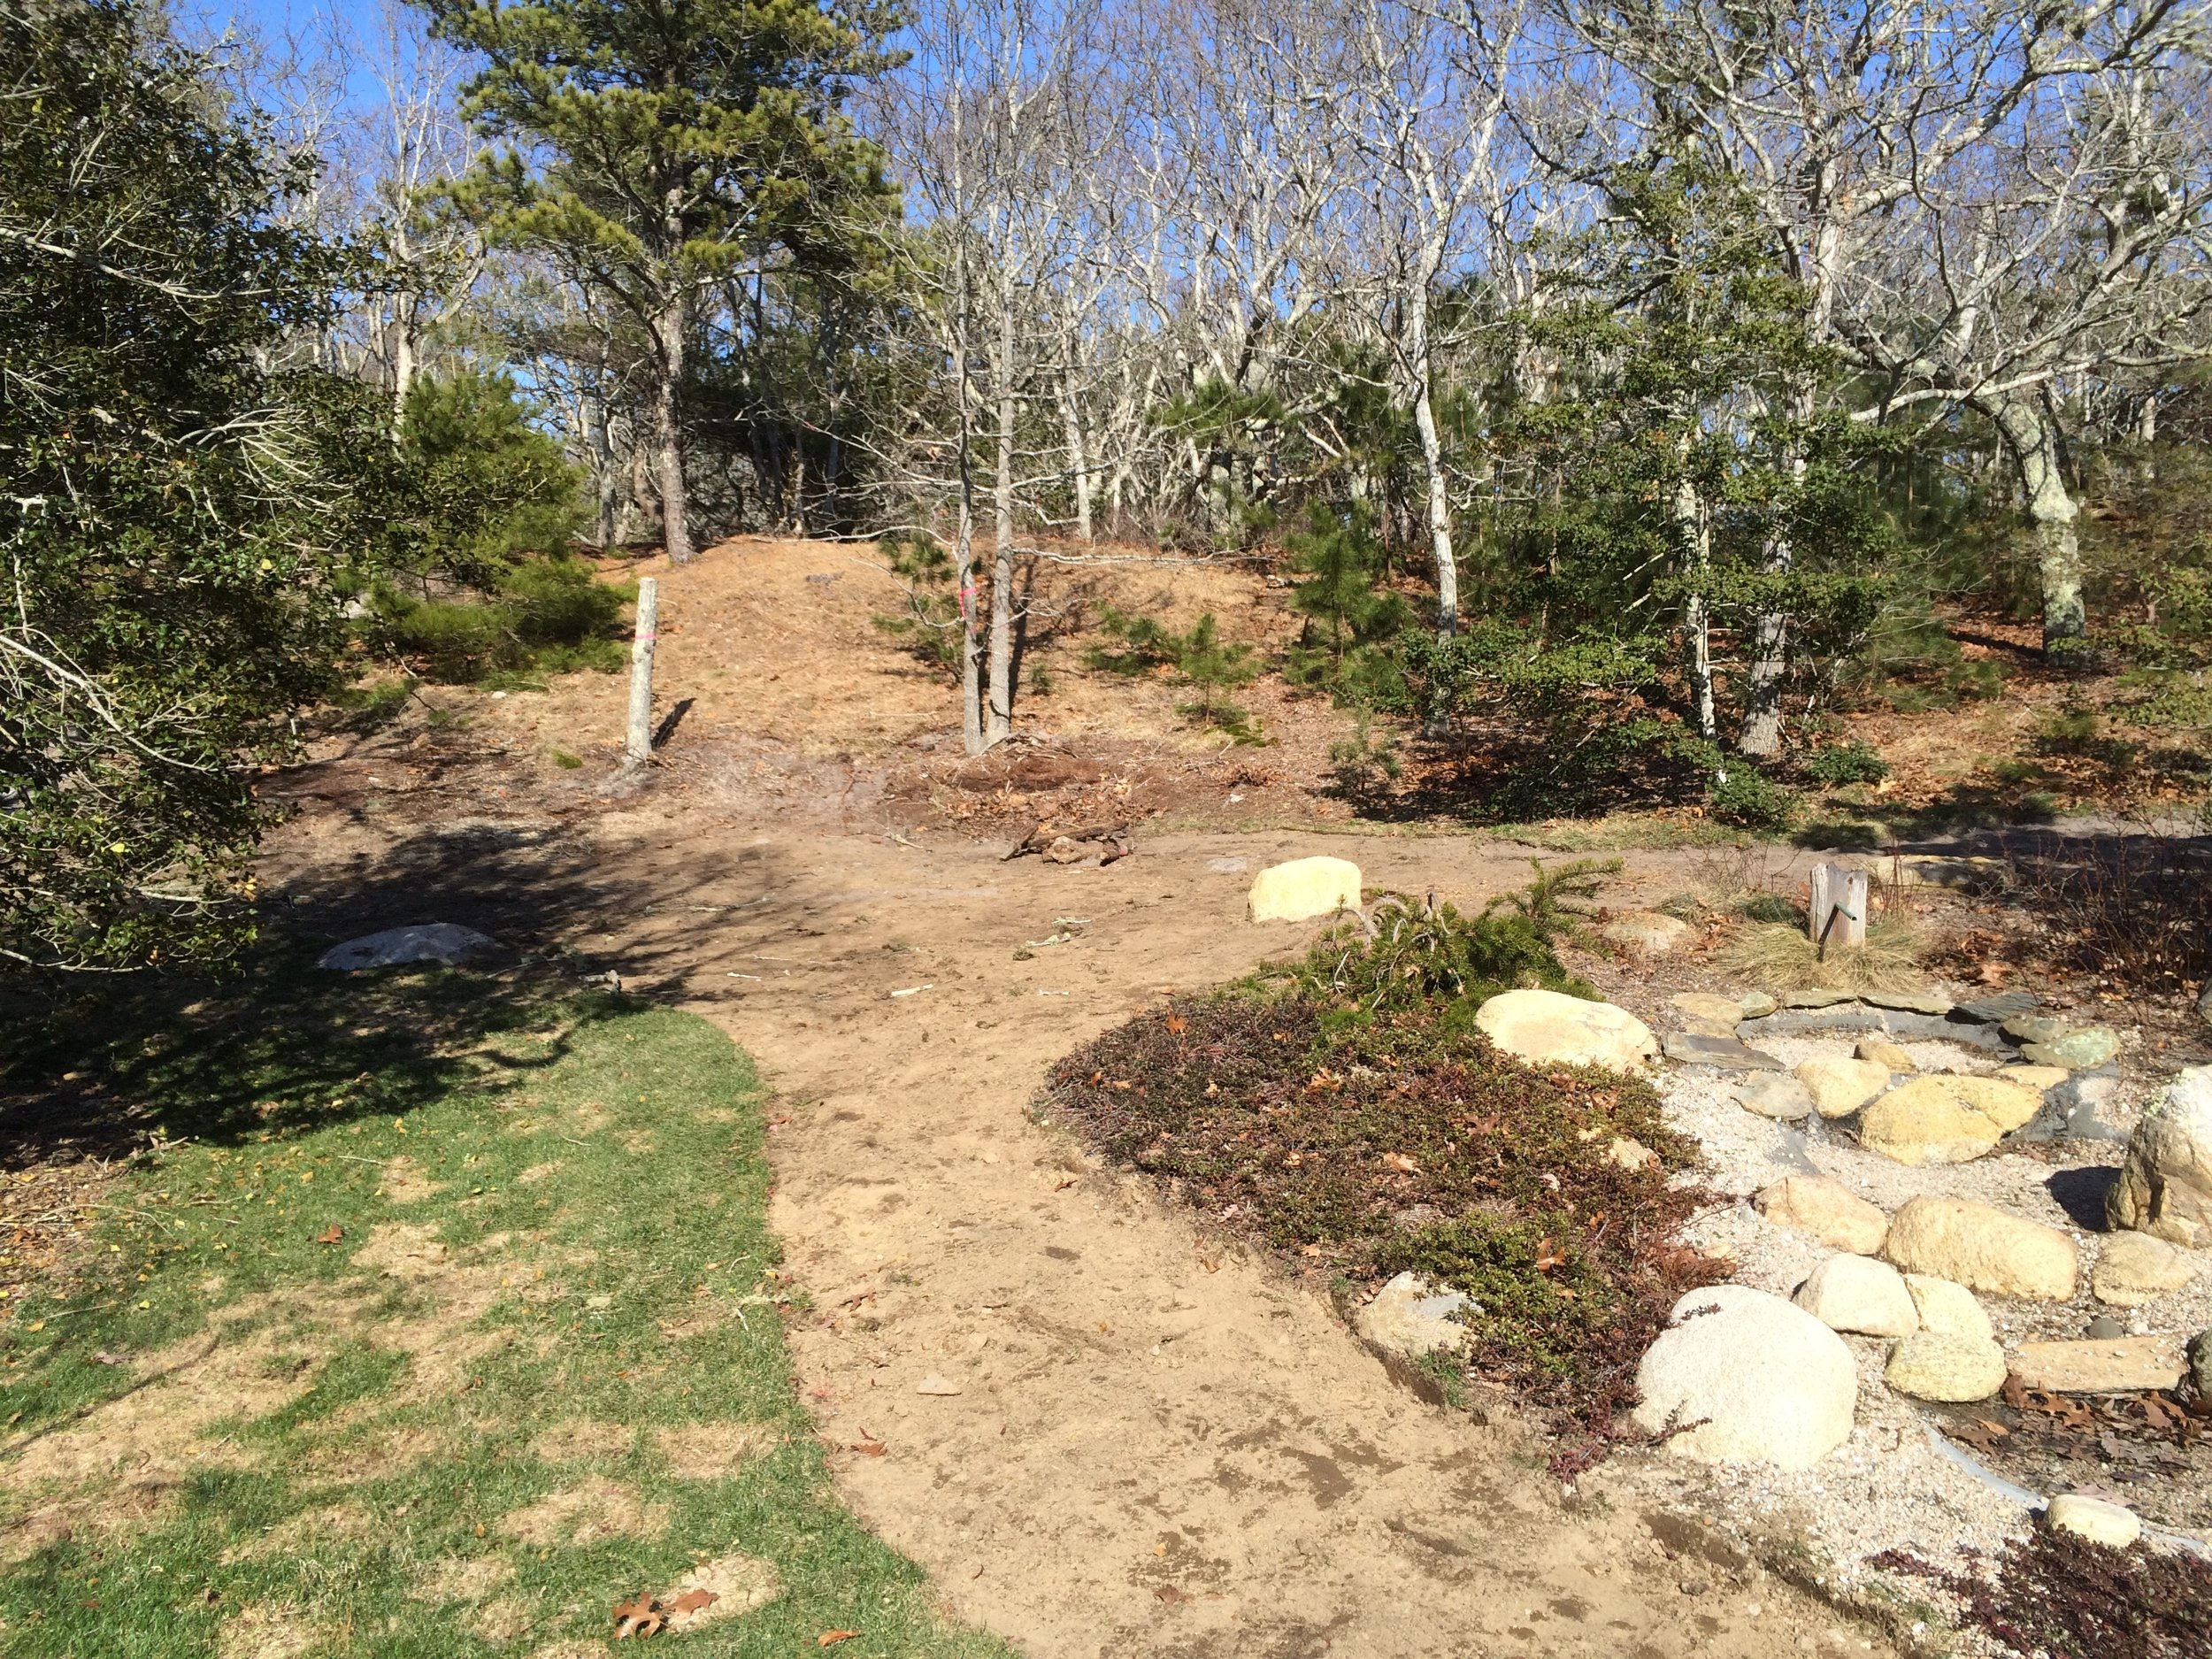 Cape Cod  - Progress picture of naturalization process. Removing gratuitous lawn to introduce natives back to property.